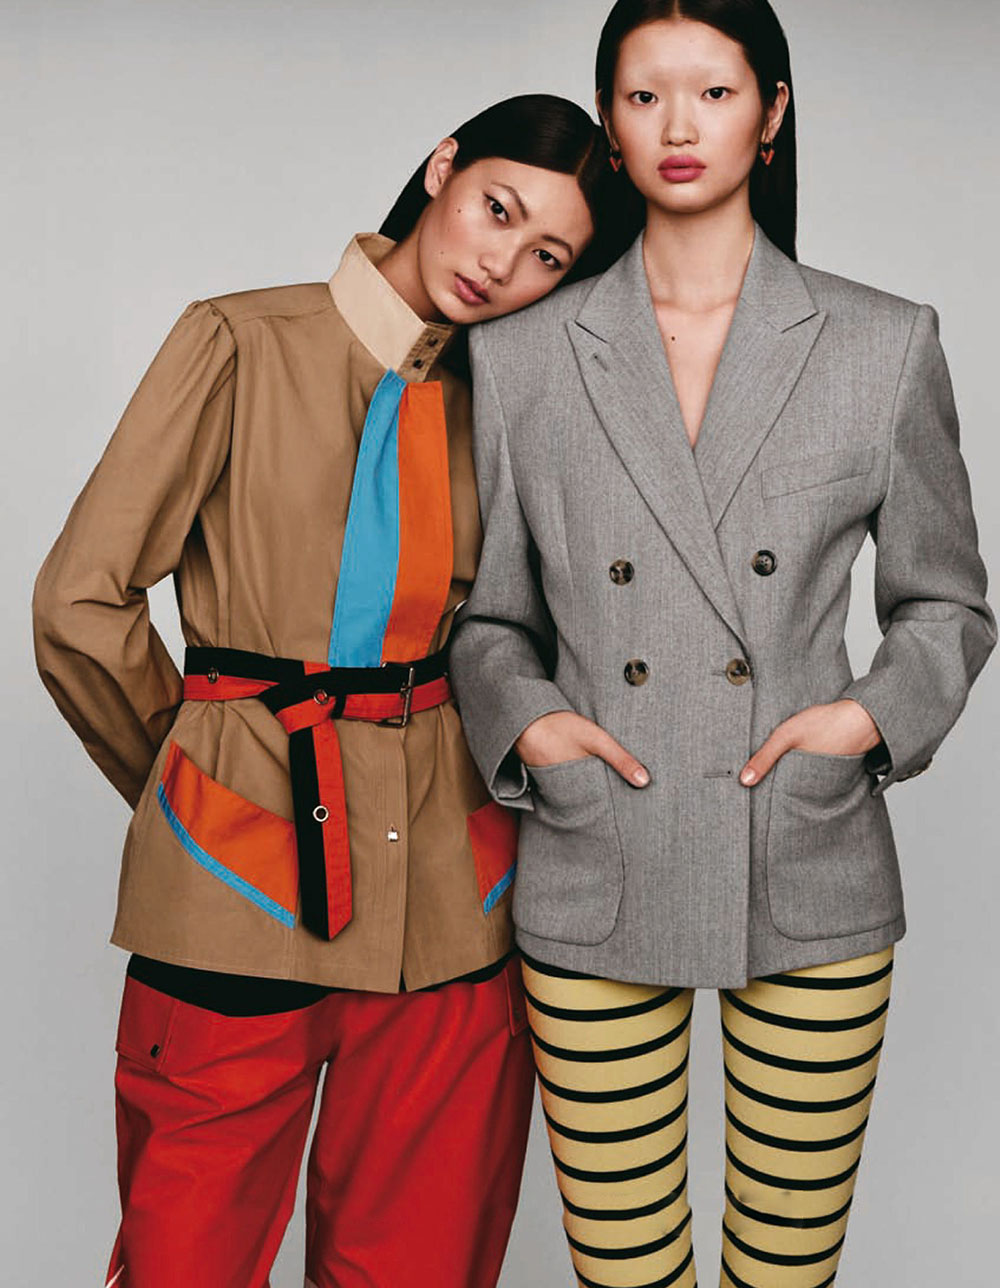 ''The New School'' by Liu Song for Vogue China January 2021